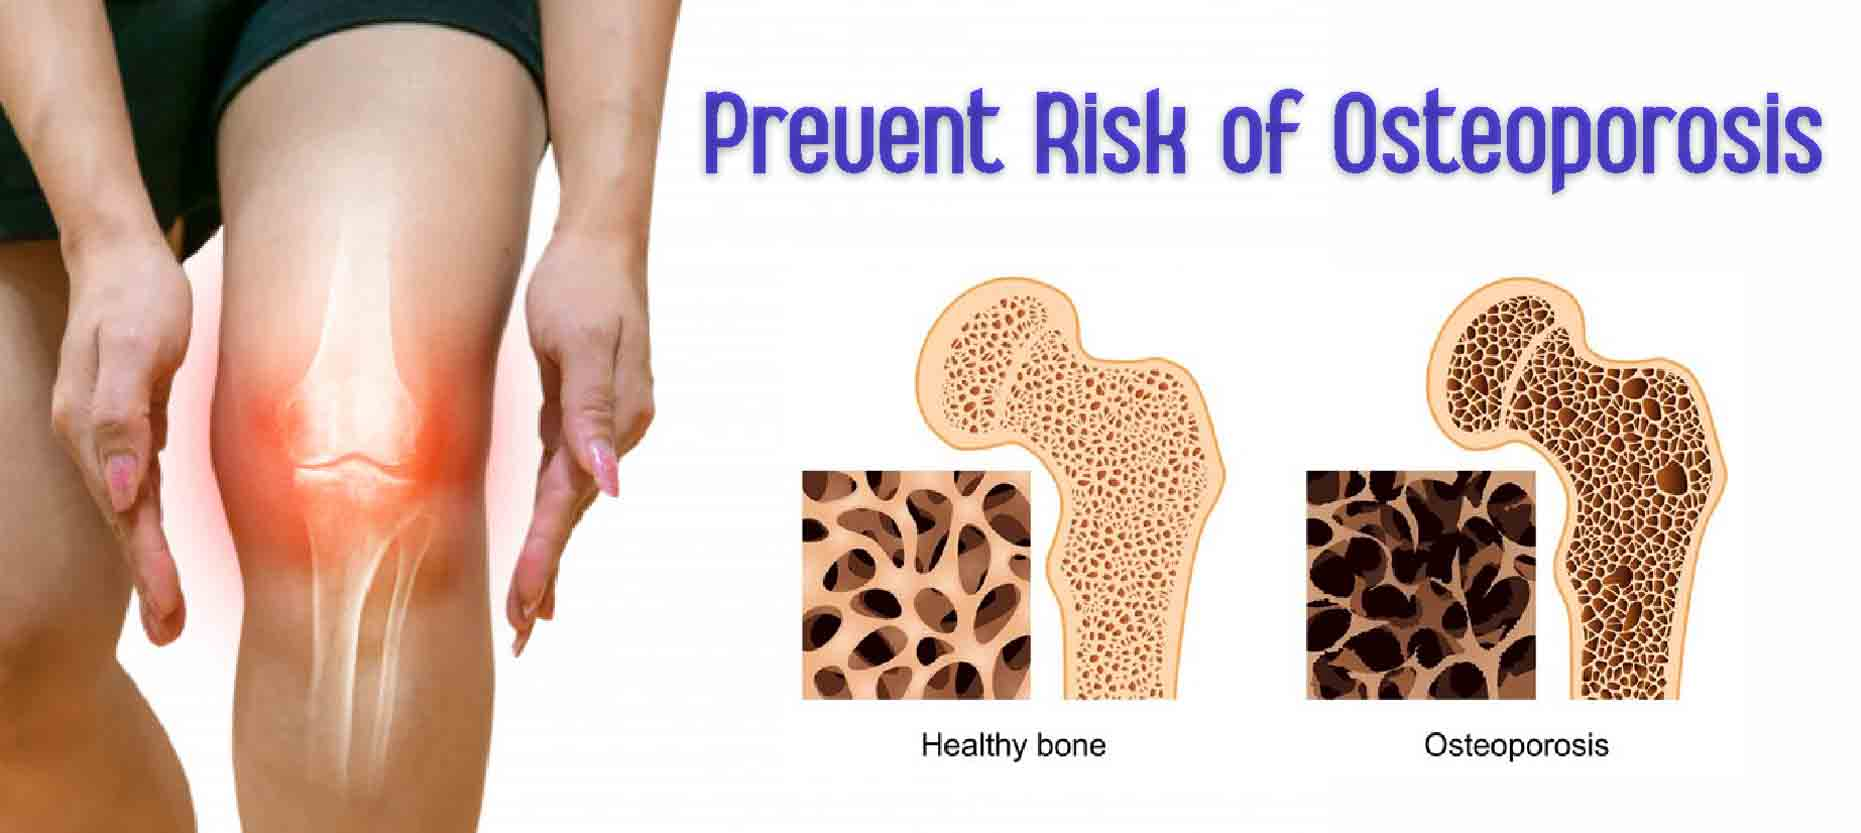 Best Ways to Prevent the Risk of Osteoporosis